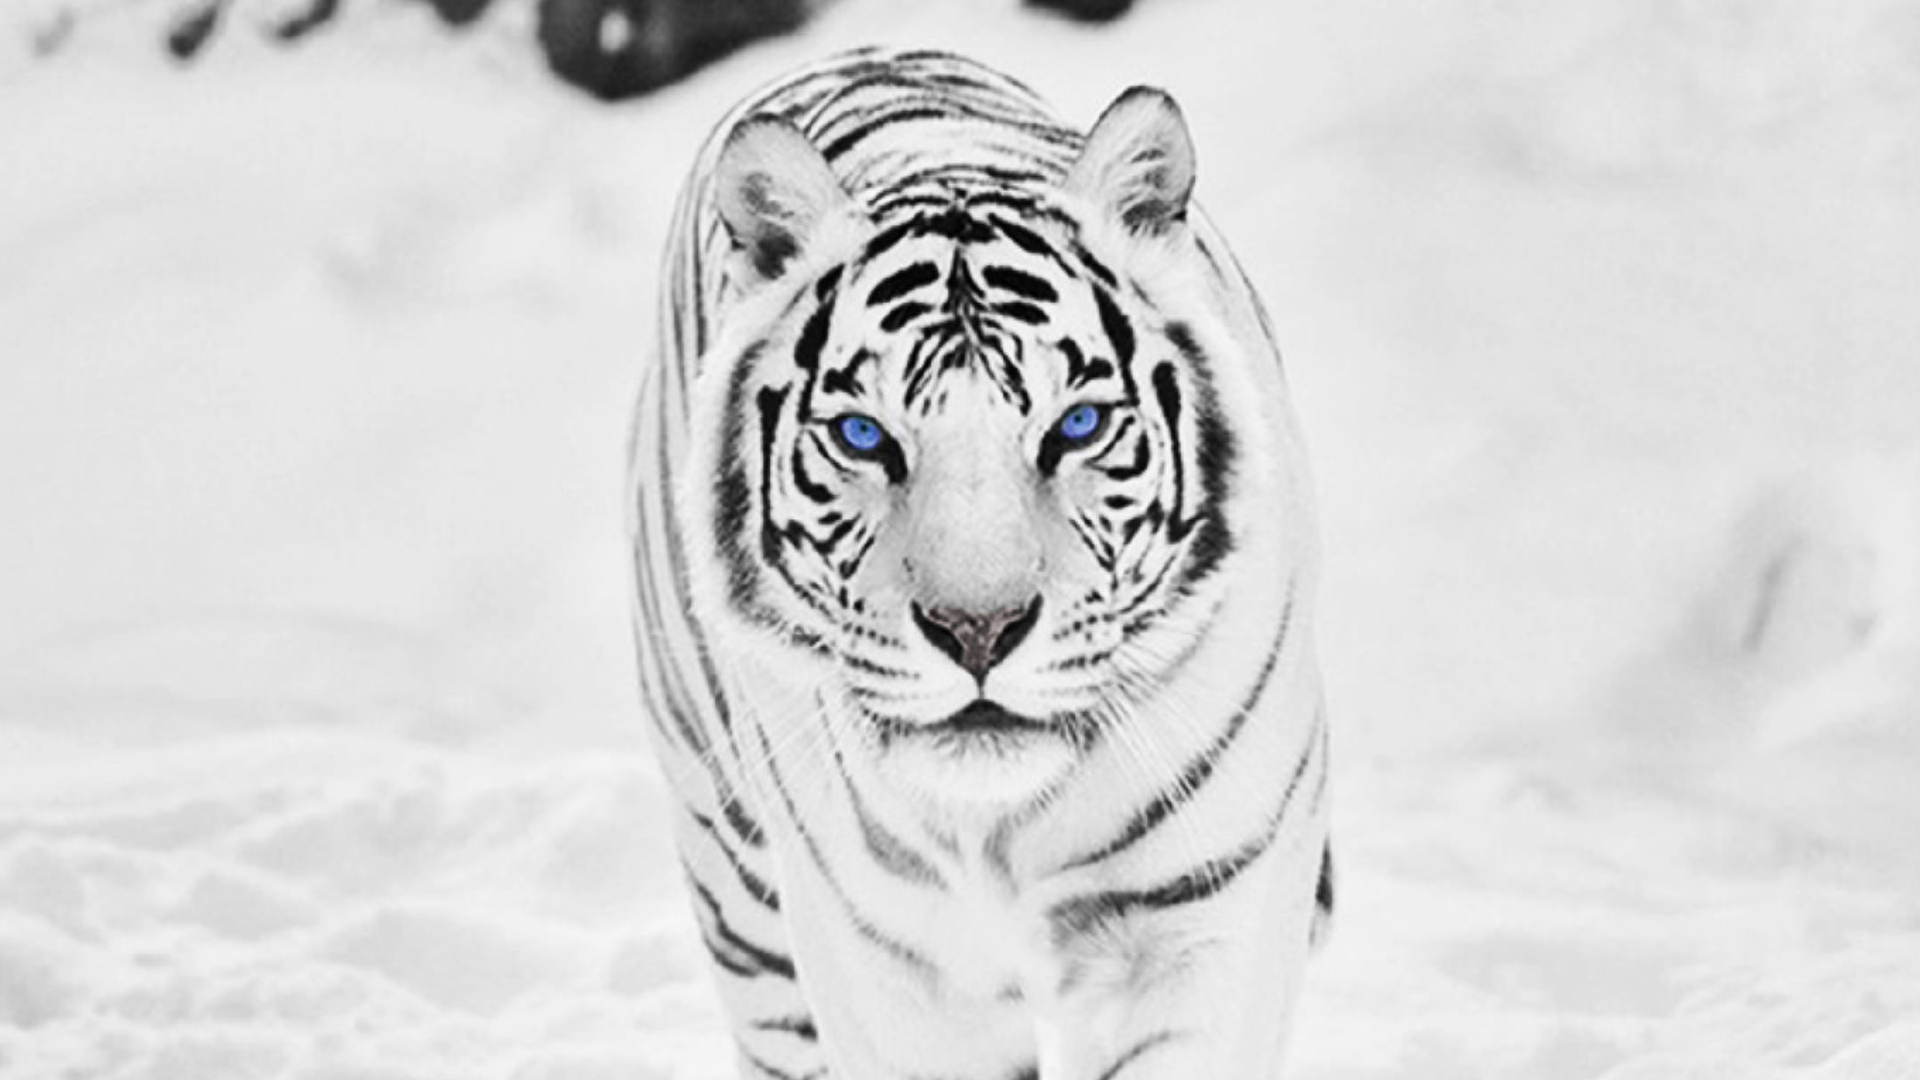 Siberian White Tiger Nexus 5 Wallpaper 1920x1080